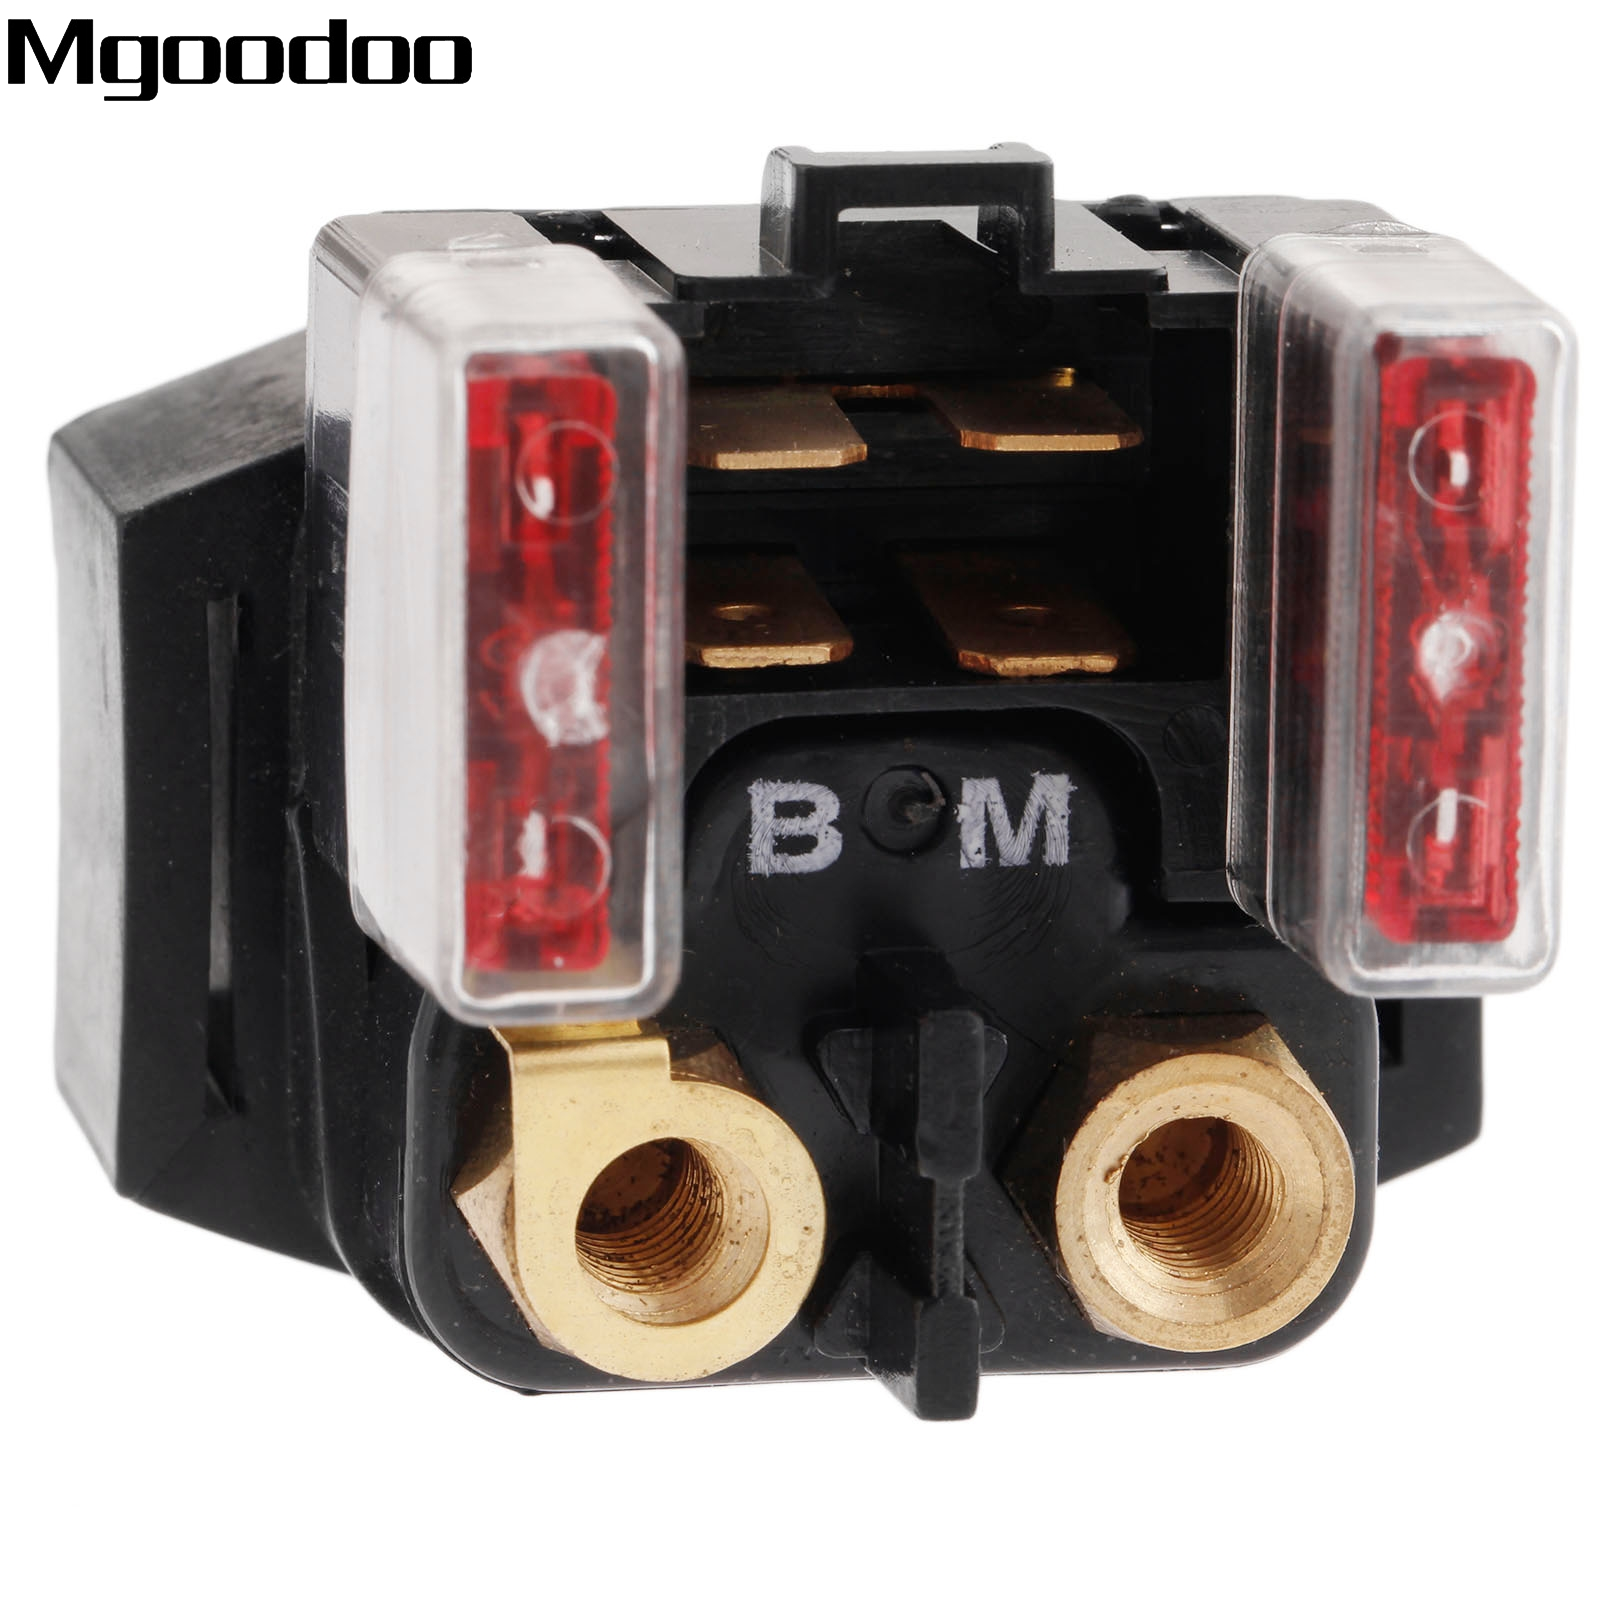 mgoodoo motorcycle atv starter relay solenoid for yamaha grizzly 660 yfm660 2002 2008 2003 2004 2005 2006 motor electrical parts in motorbike ingition from  [ 1600 x 1600 Pixel ]